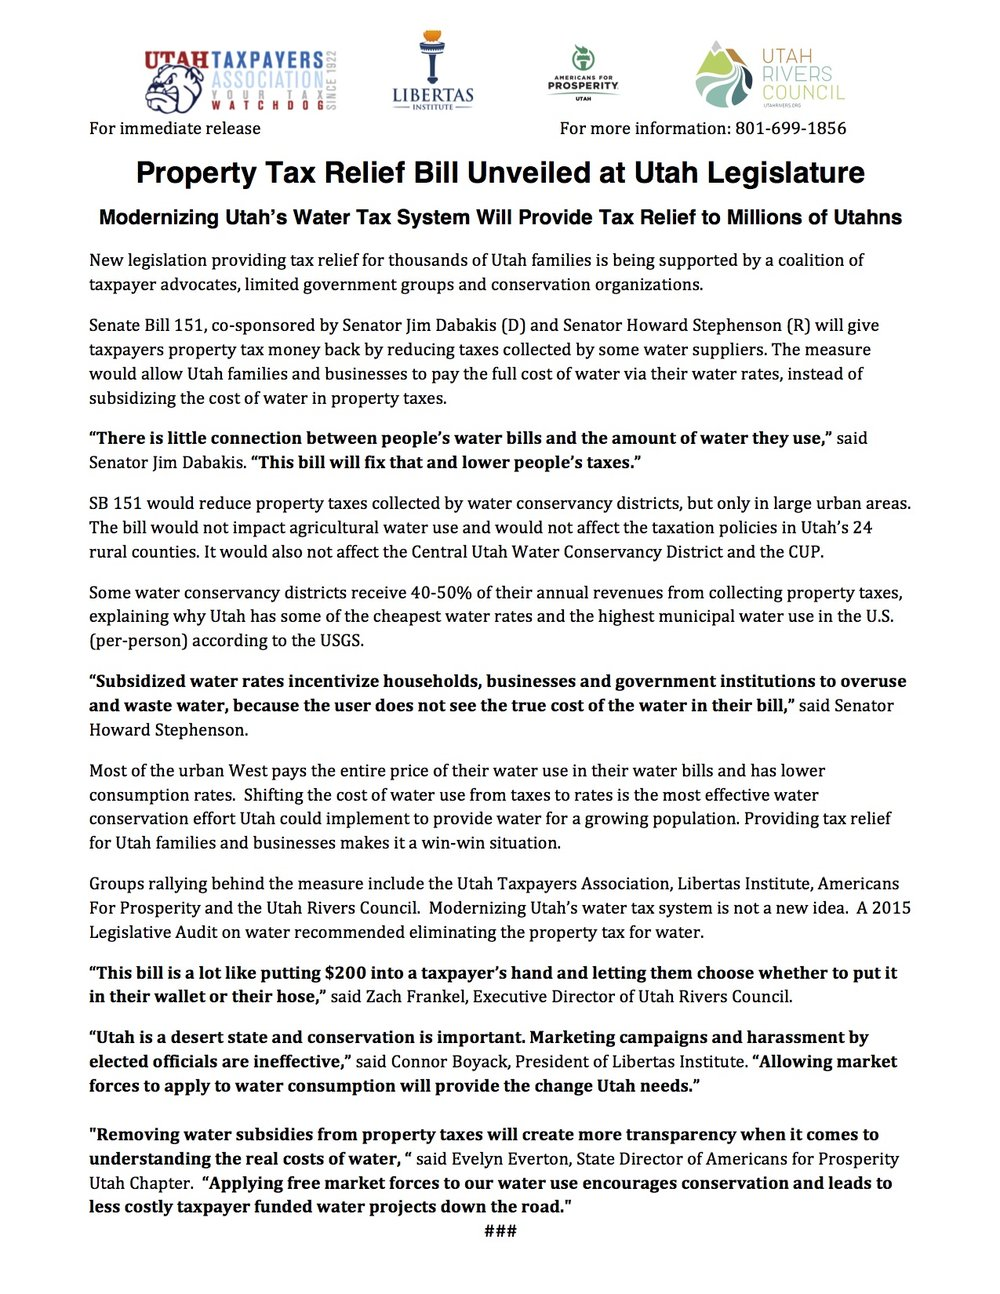 Property Tax Relief Bill Unveiled at Legislature